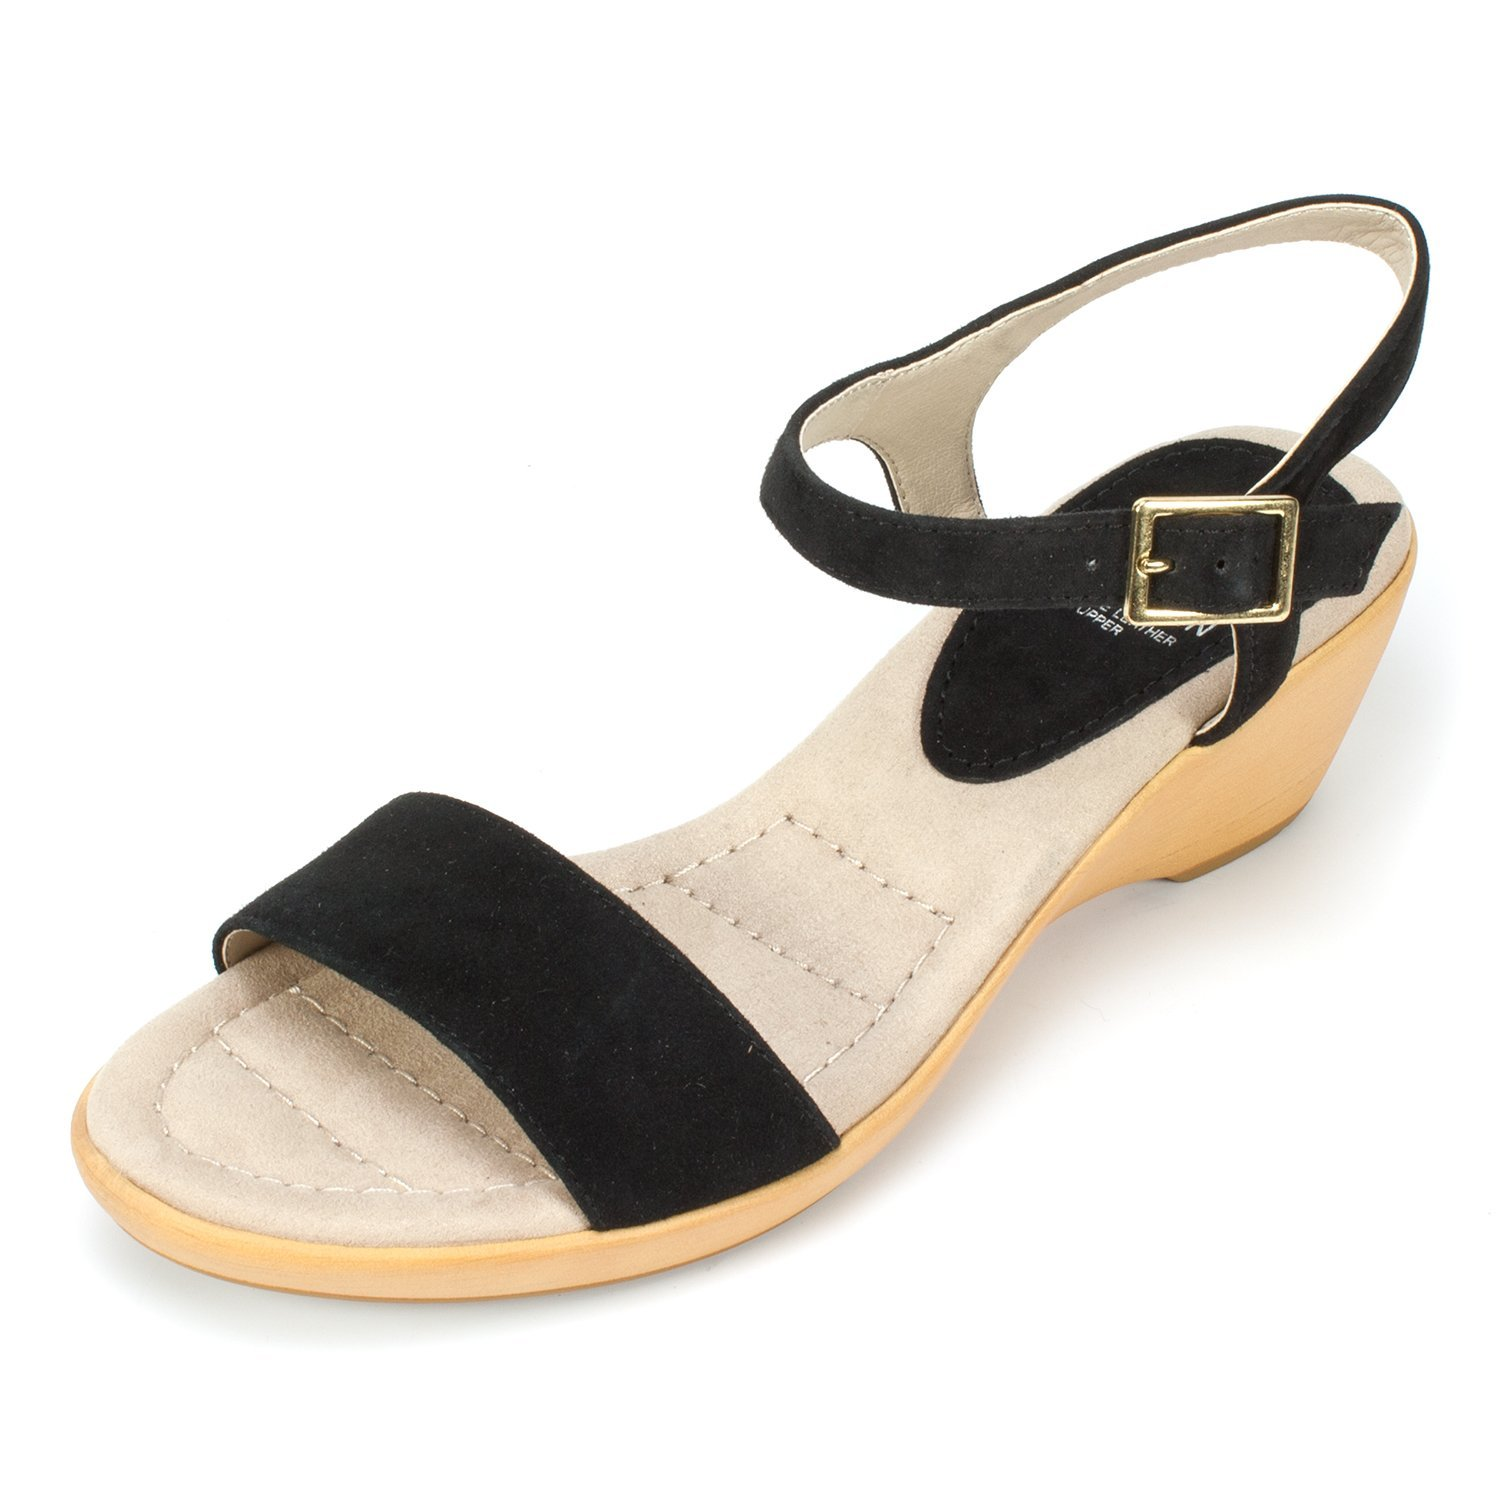 Corky S Clearance Shoes